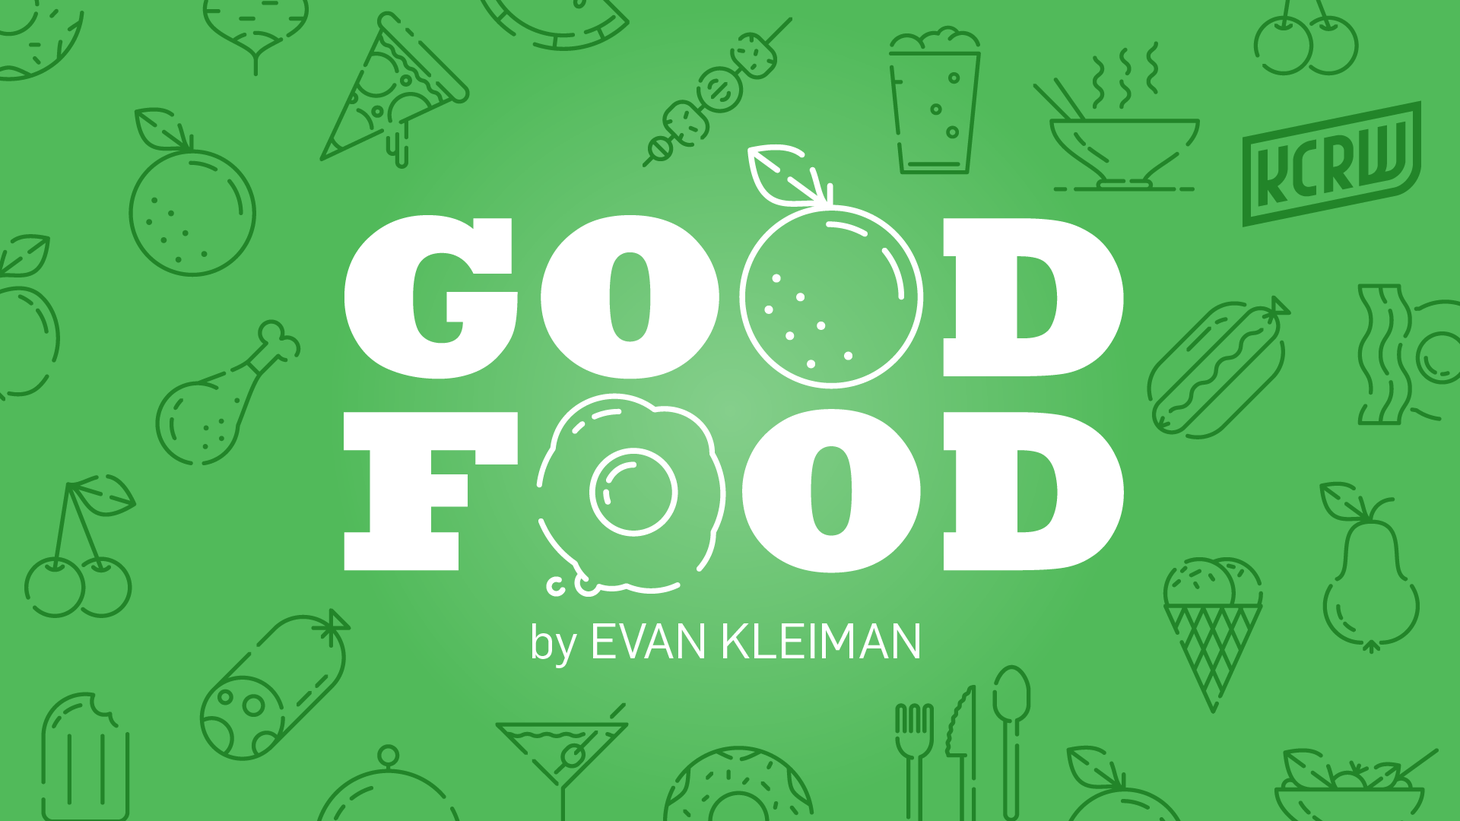 This week on Good Food, host Evan Kleiman tells you everything you want to know about fish. We'll talk to a fisherman about what he's catching; go to Santa Monica Seafood to find out what to look for when you're buying fish; hear from wine critic Dan Berger about what's good to imbibe with fish; and catch up on some new fish utensils that make preparing it and cooking it easier. All this plus the Farmer's Market report on Good Food.